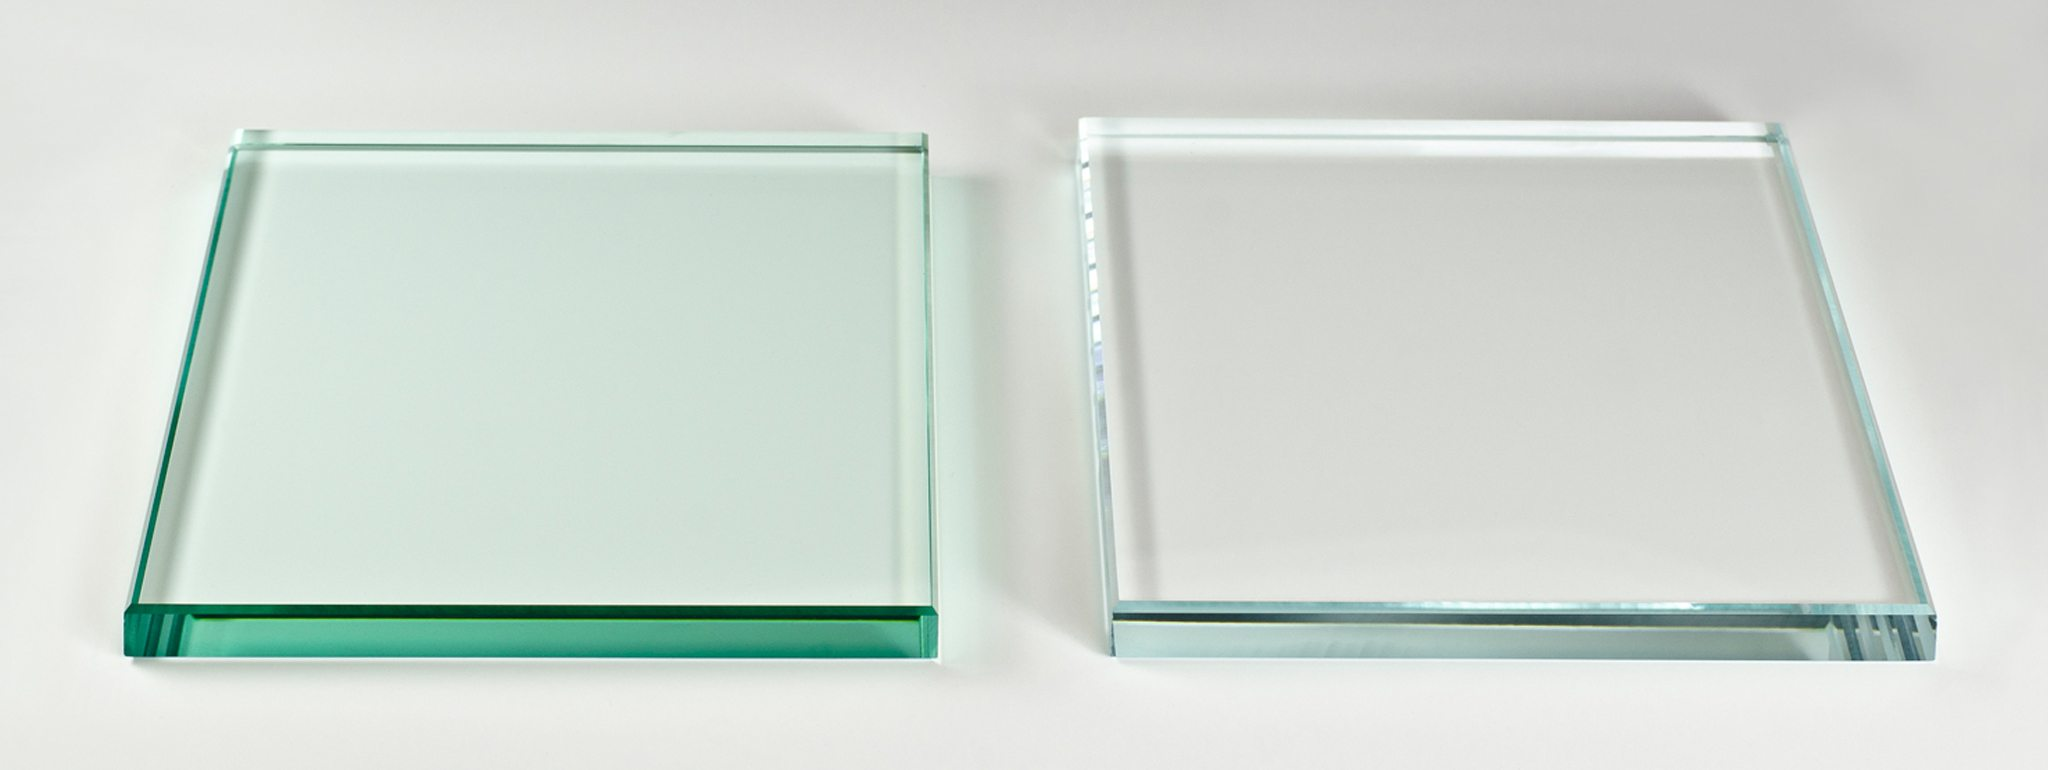 Find out more about the glass types available at Nathan Allan